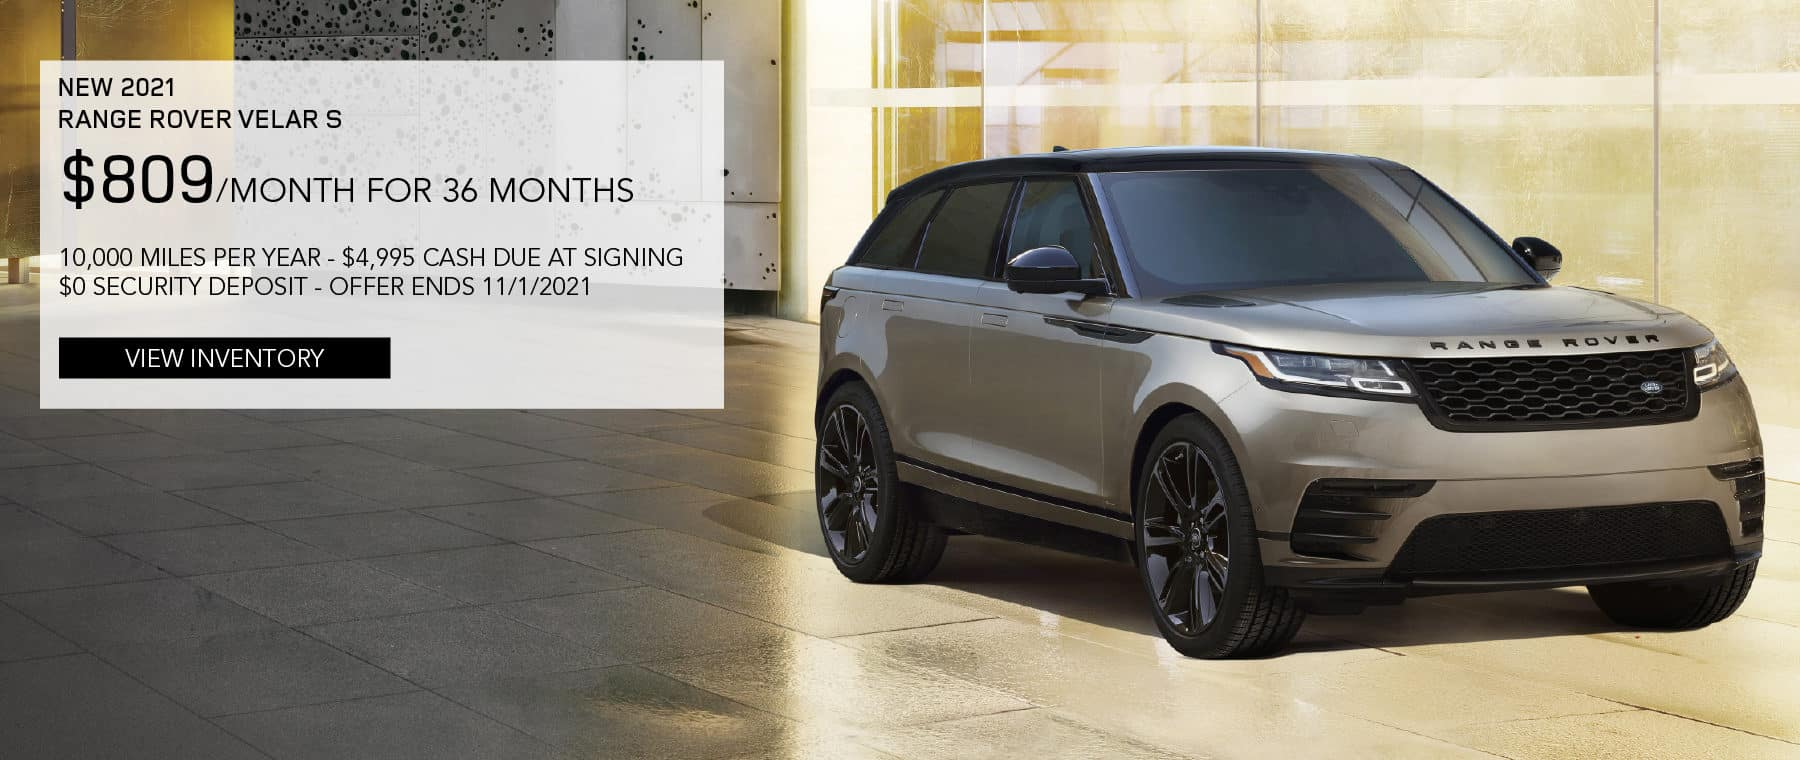 NEW 2021 RANGE ROVER VELAR S. $809 PER MONTH. 36 MONTH LEASE TERM. $4,995 CASH DUE AT SIGNING. $0 SECURITY DEPOSIT. 10,000 MILES PER YEAR. EXCLUDES RETAILER FEES, TAXES, TITLE AND REGISTRATION FEES, PROCESSING FEE AND ANY EMISSION TESTING CHARGE. OFFER ENDS 11/1/2021. VIEW INVENTORY. BROWN RANGE ROVER VELAR PARKED IN CITY.